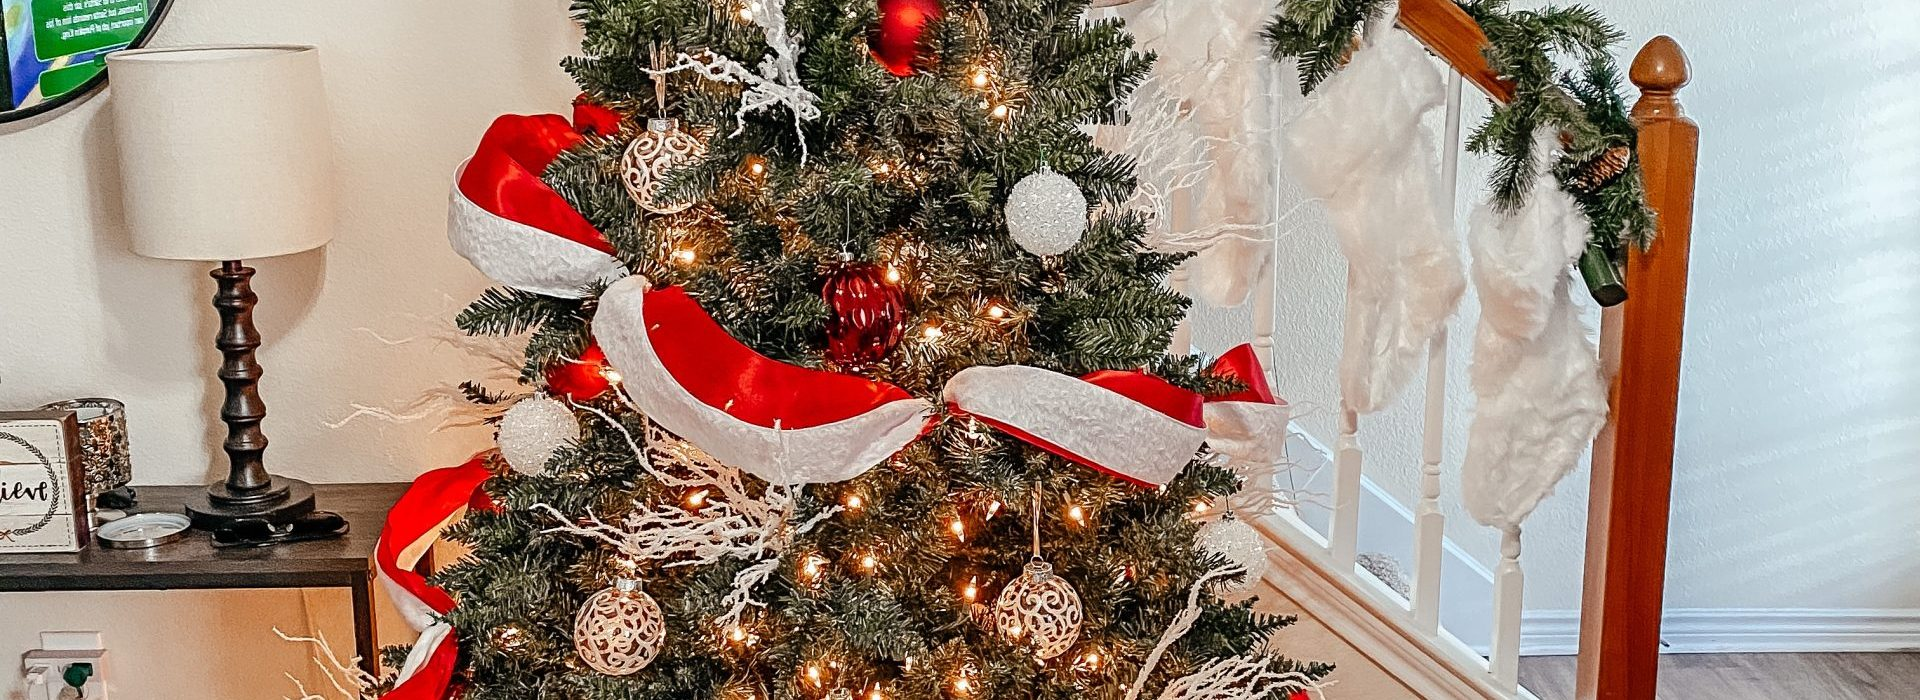 Where to Find the Best Artificial Christmas Tree